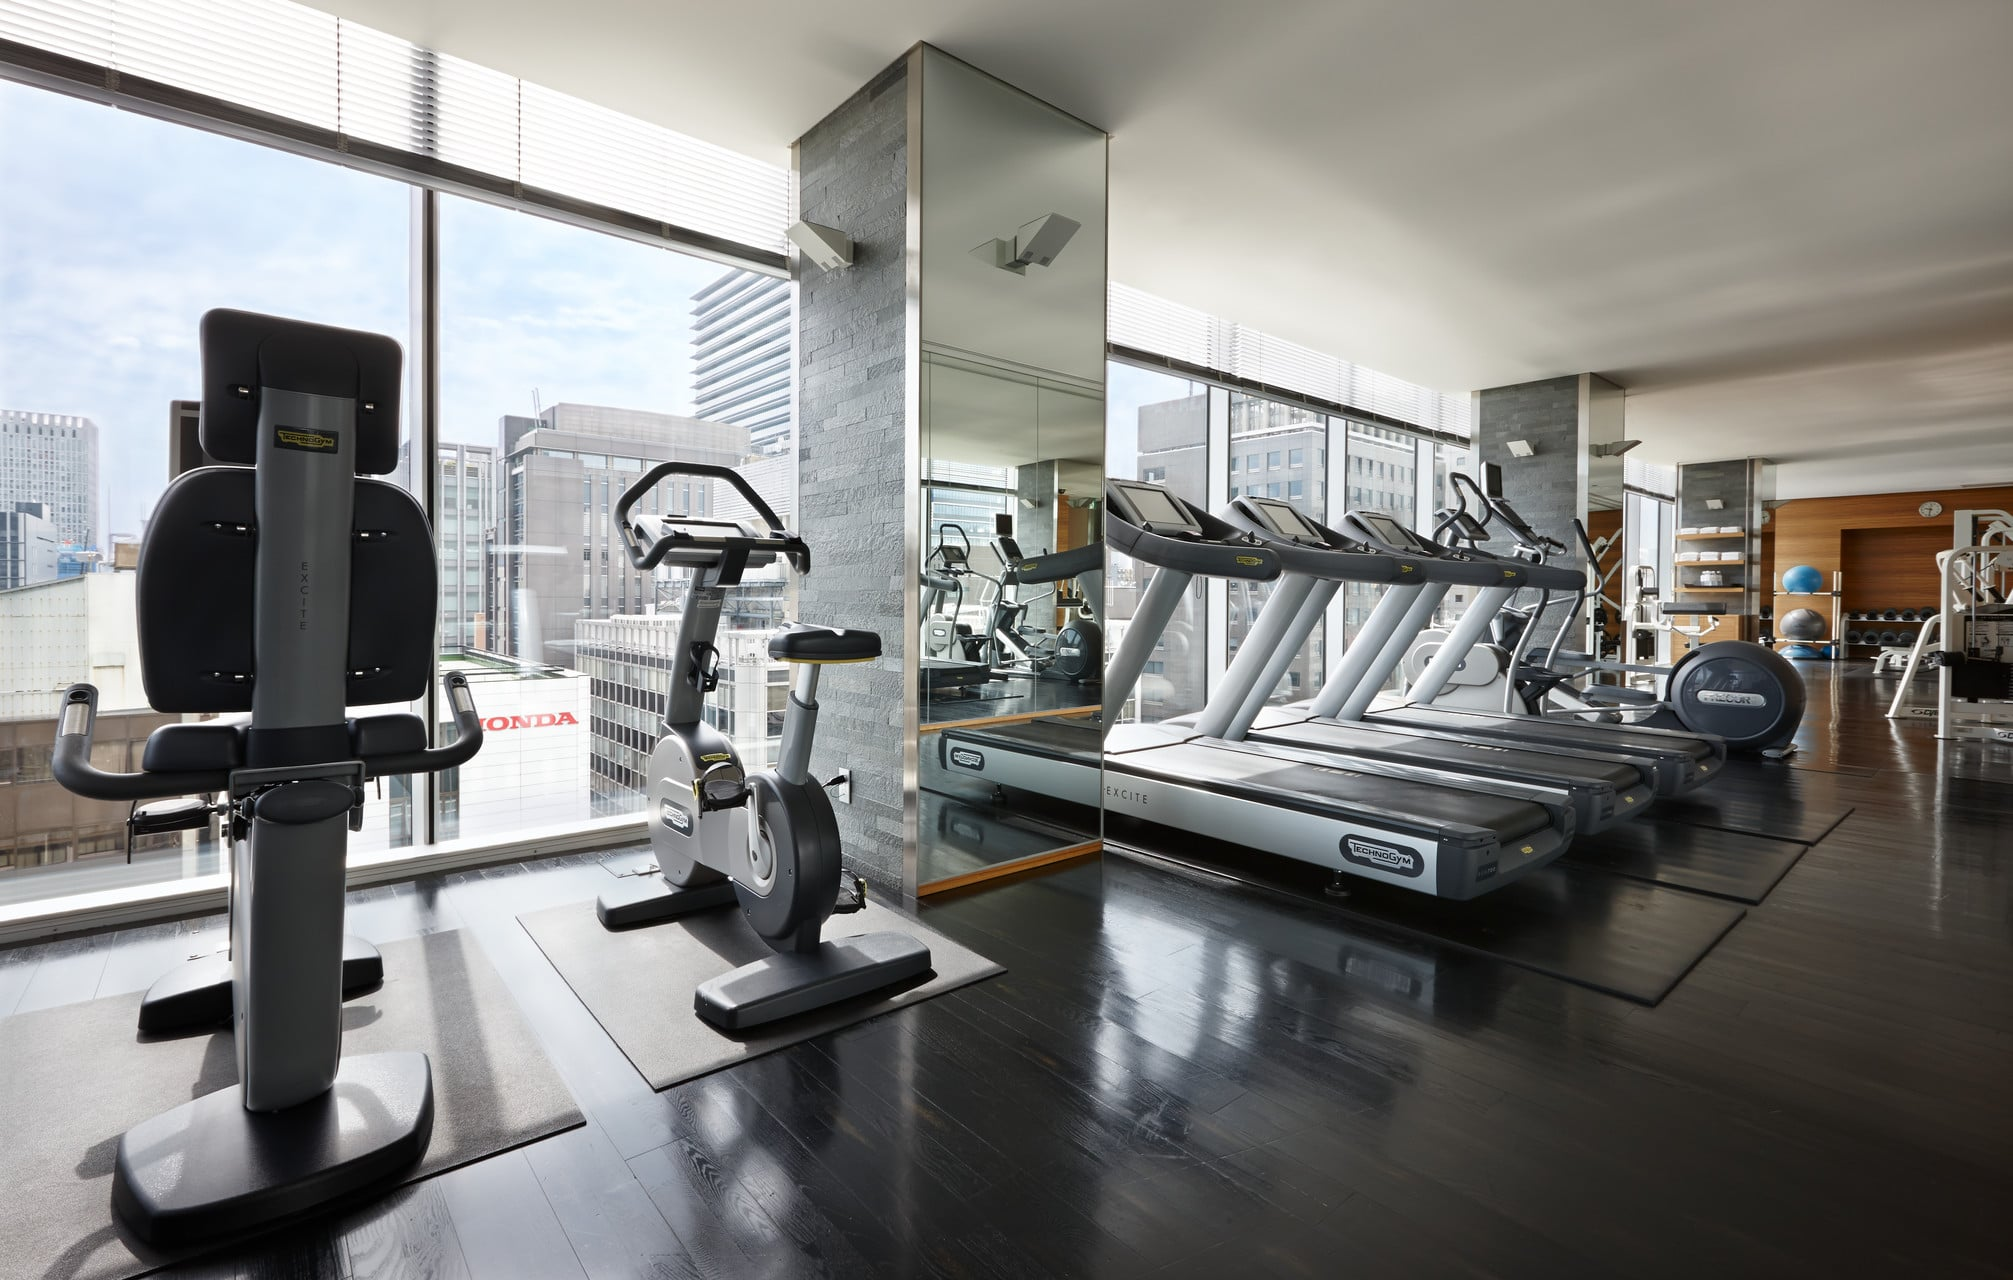 Cardio machines overlooking floor-to-ceiling windows with city views in the fitness center.